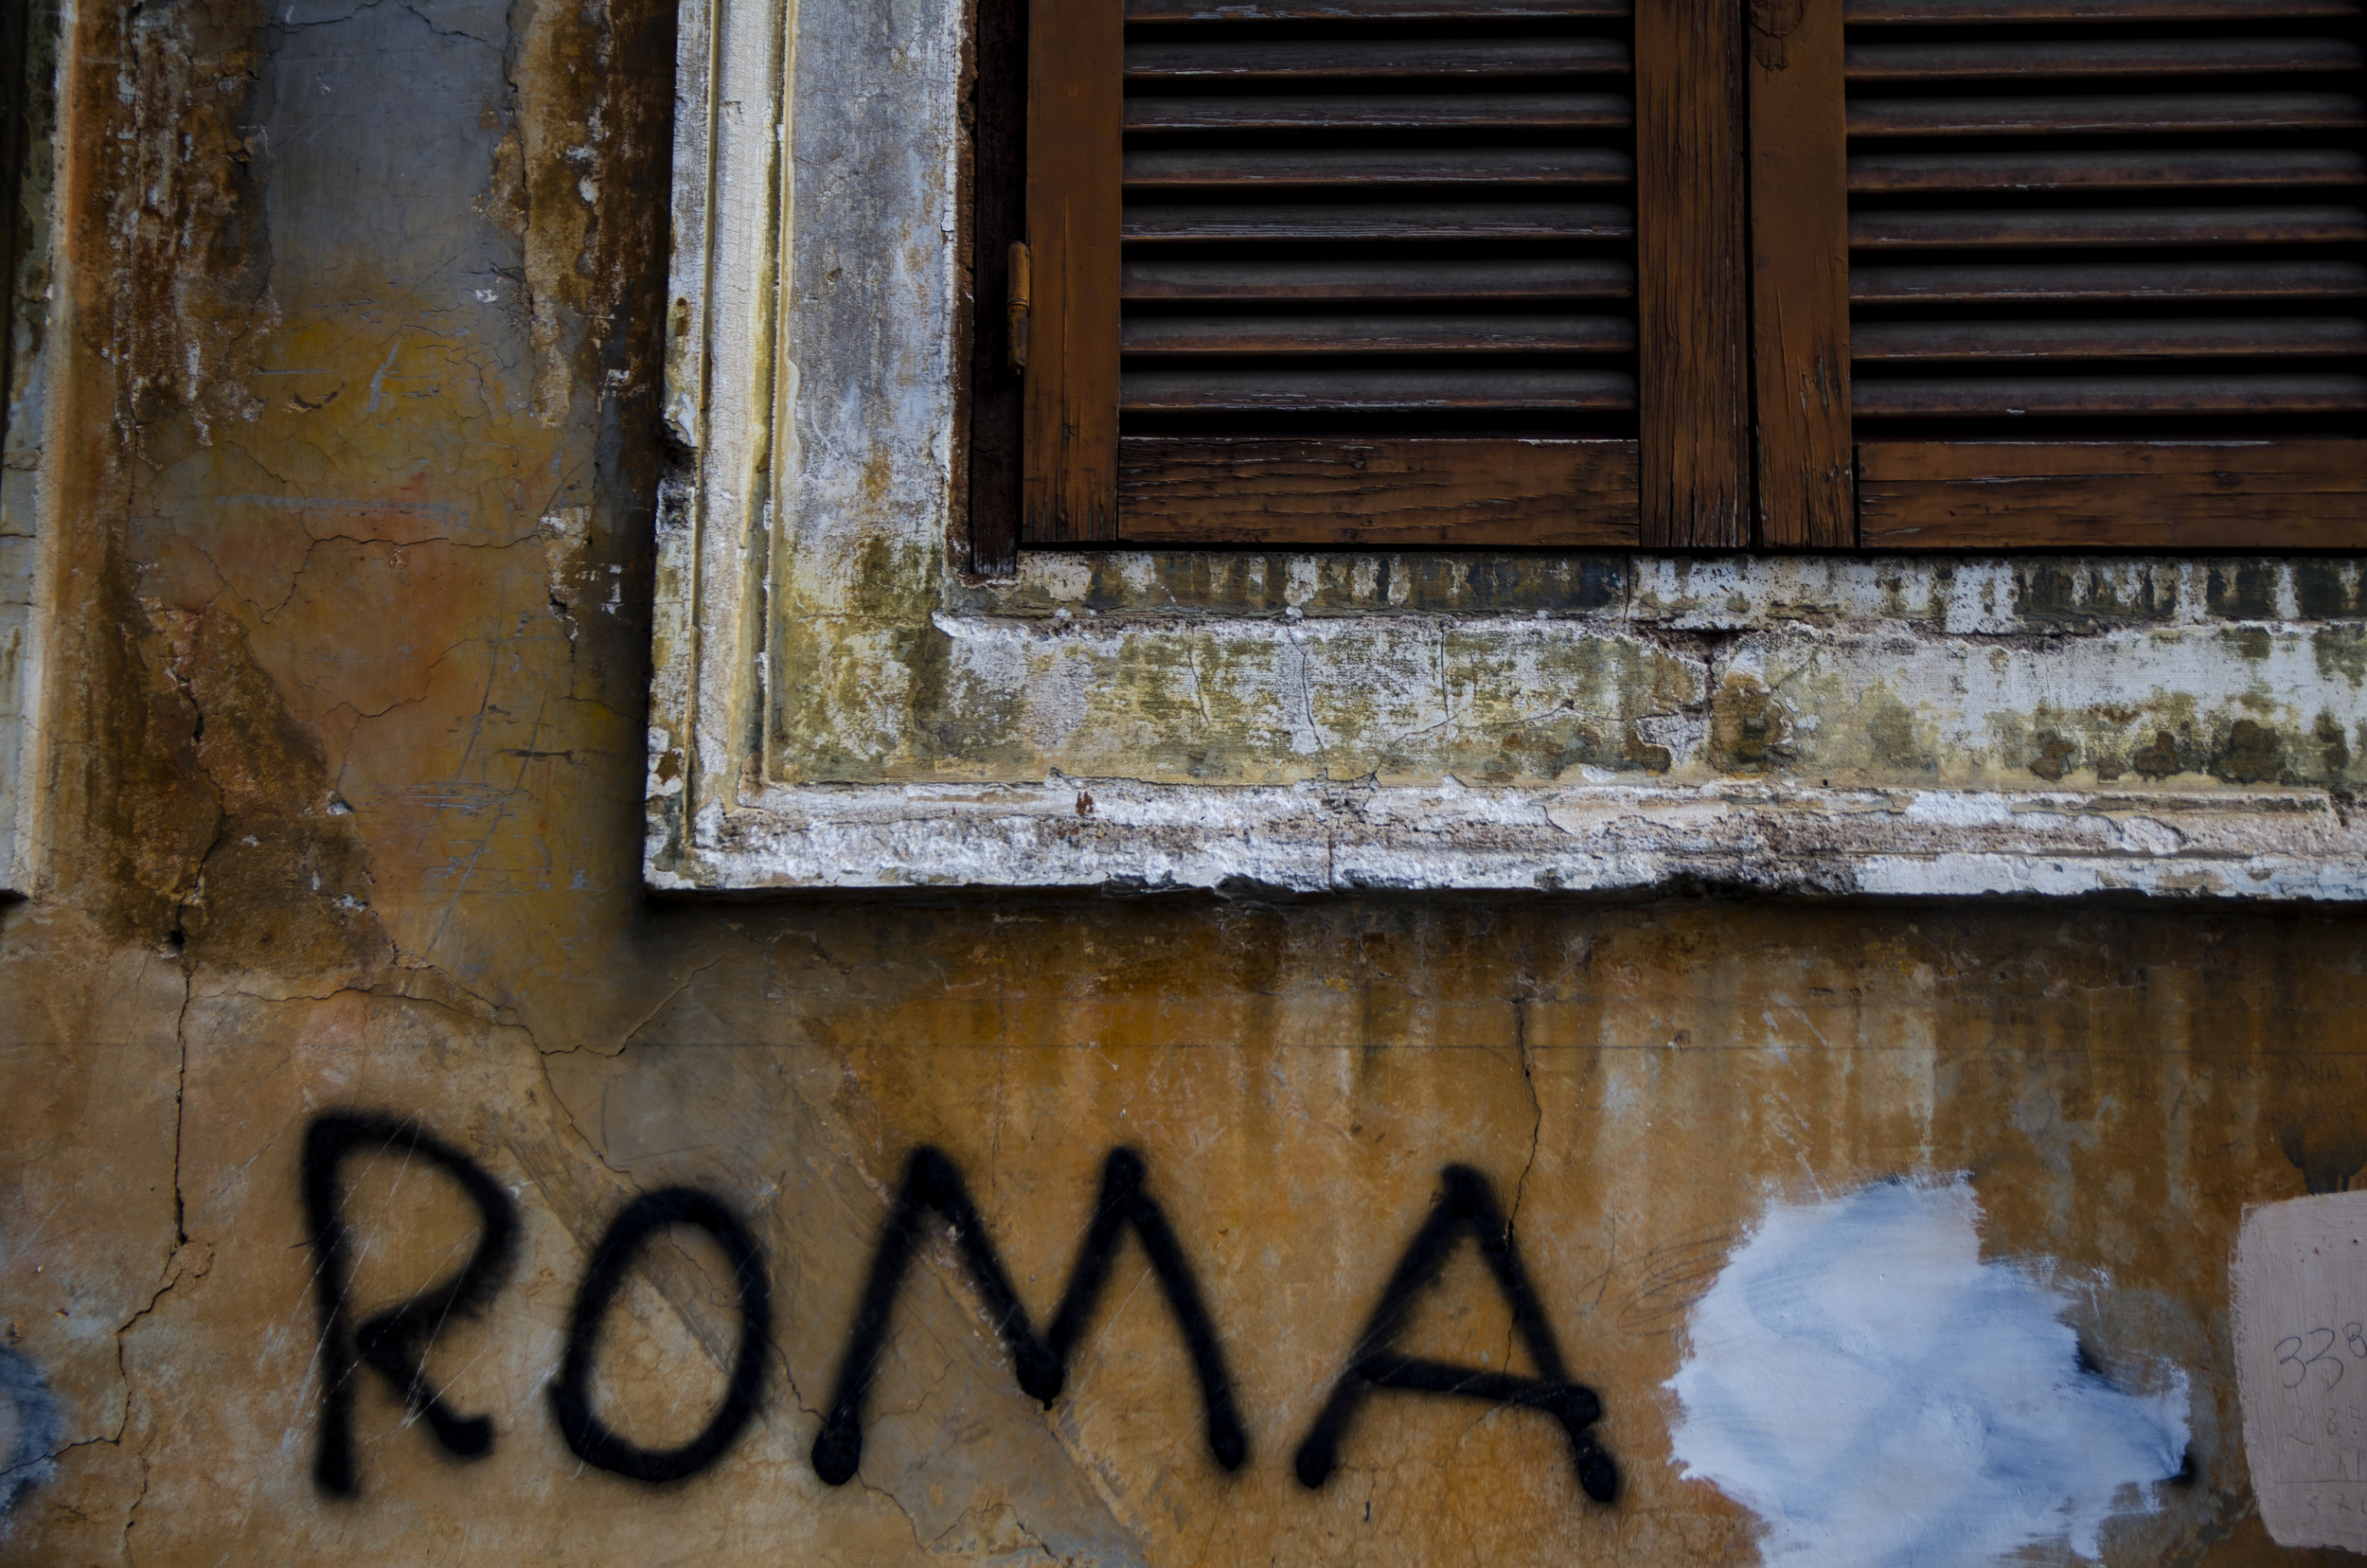 The Eternal City shows its age and youth simultaneously as the paintcrumbles andplaster is slathered with modern graffiti.